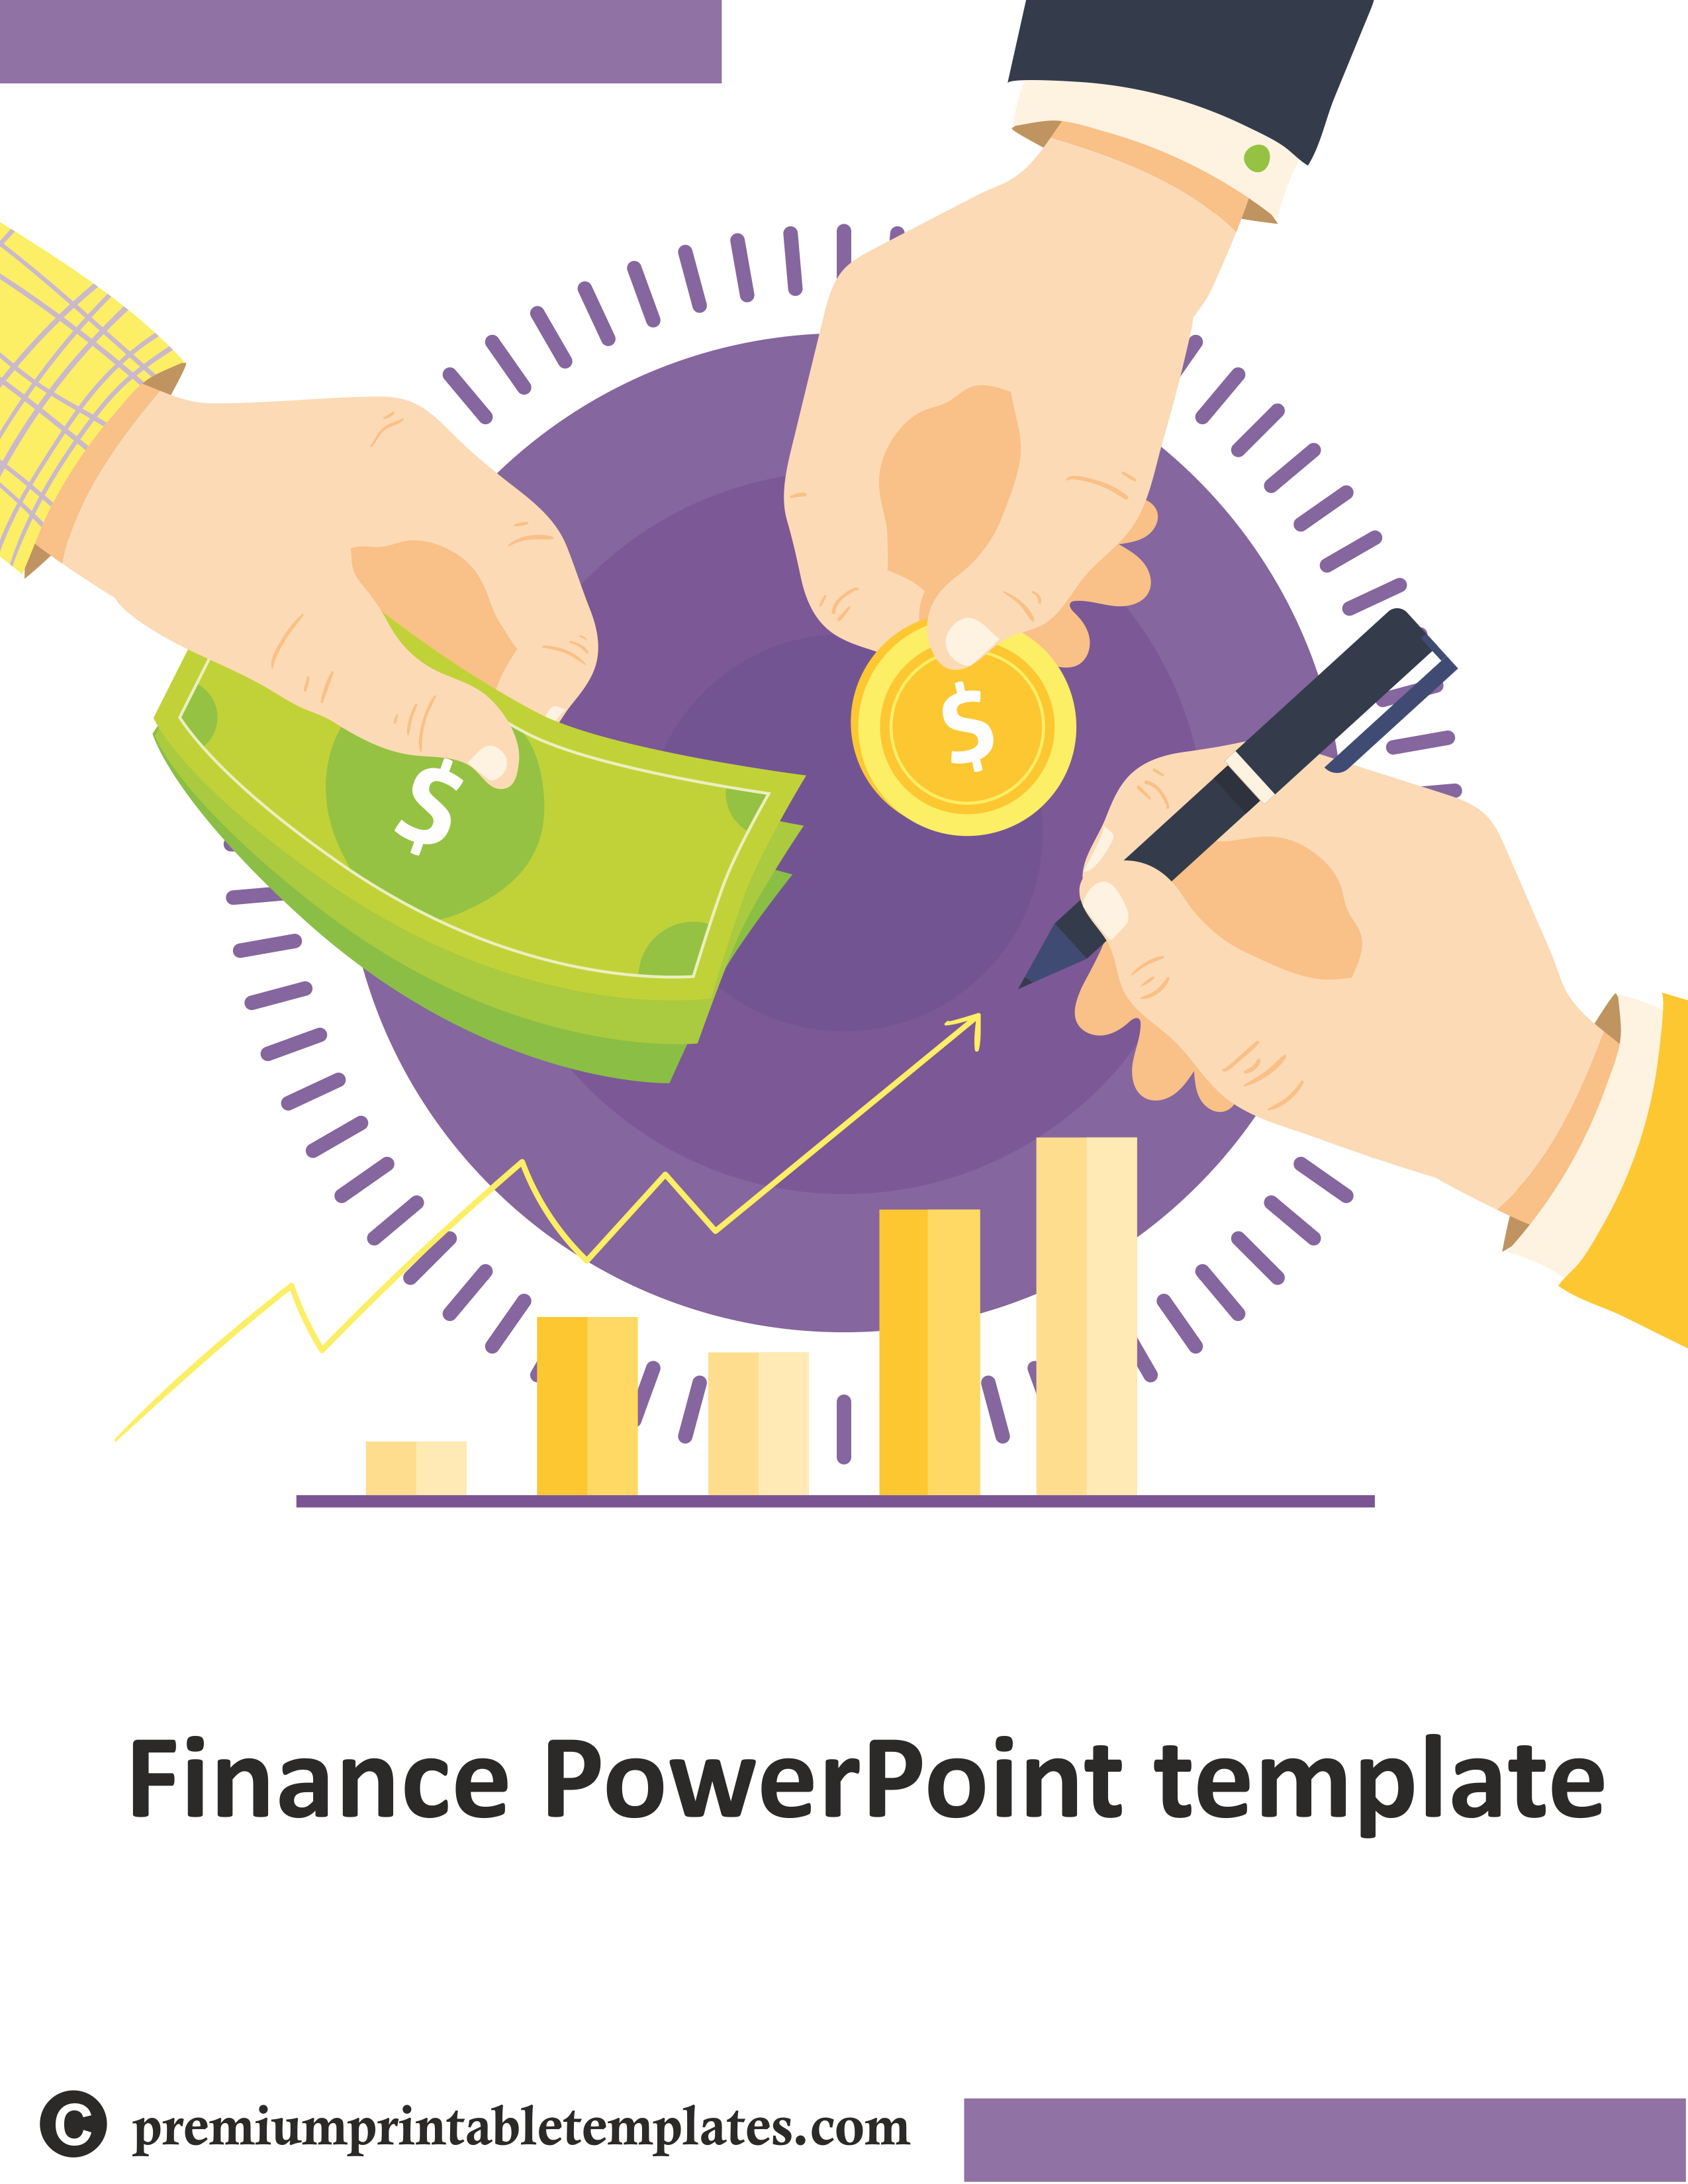 Finance Powerpoint Templates Finance Powerpoint Template Is A Free